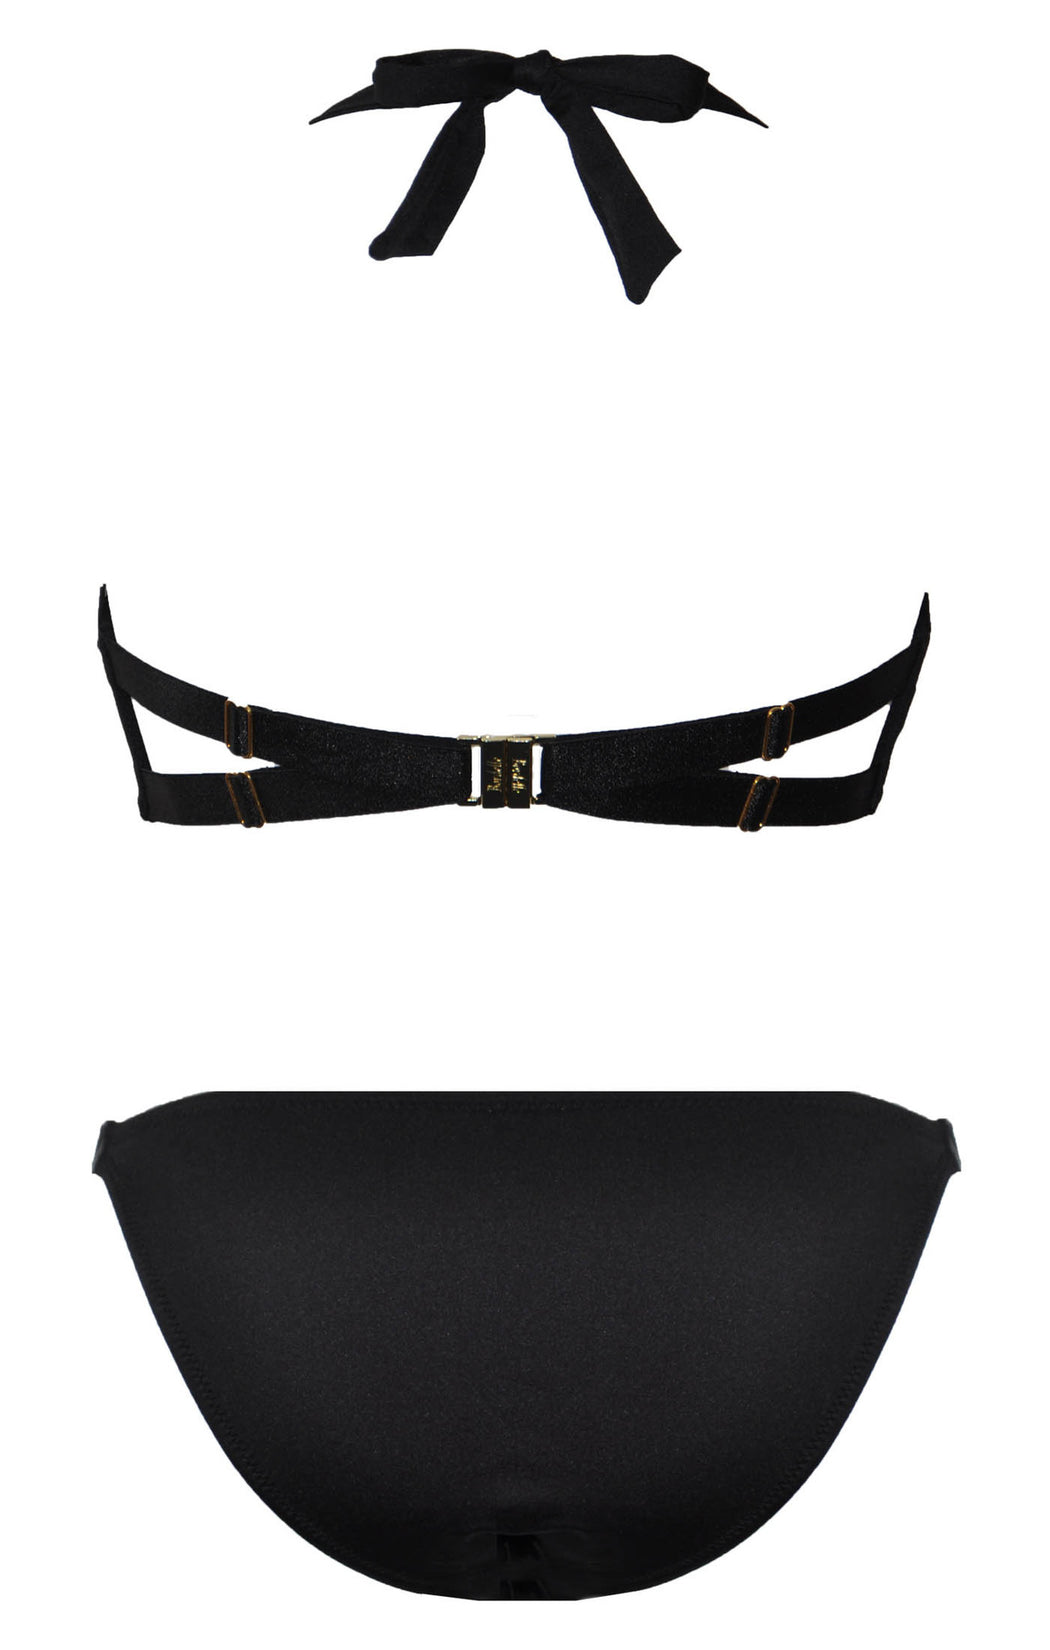 Sofia bikini by Bordelle Gold, black and convertible straps